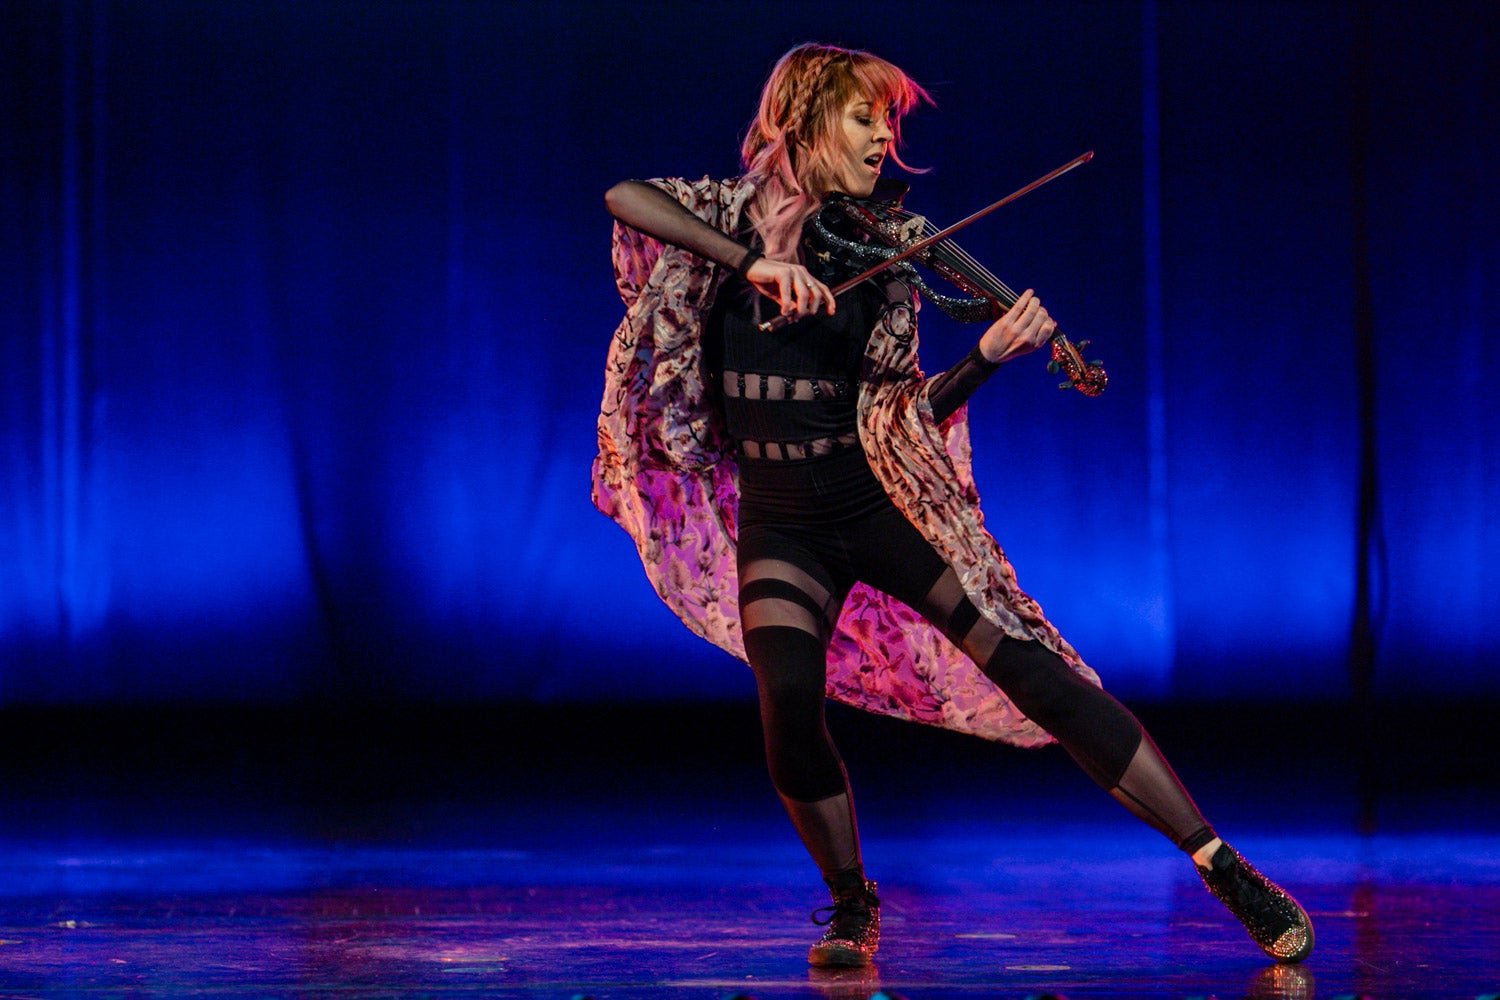 Lindsey Stirling on stage at Summit of Greatness performing the violin